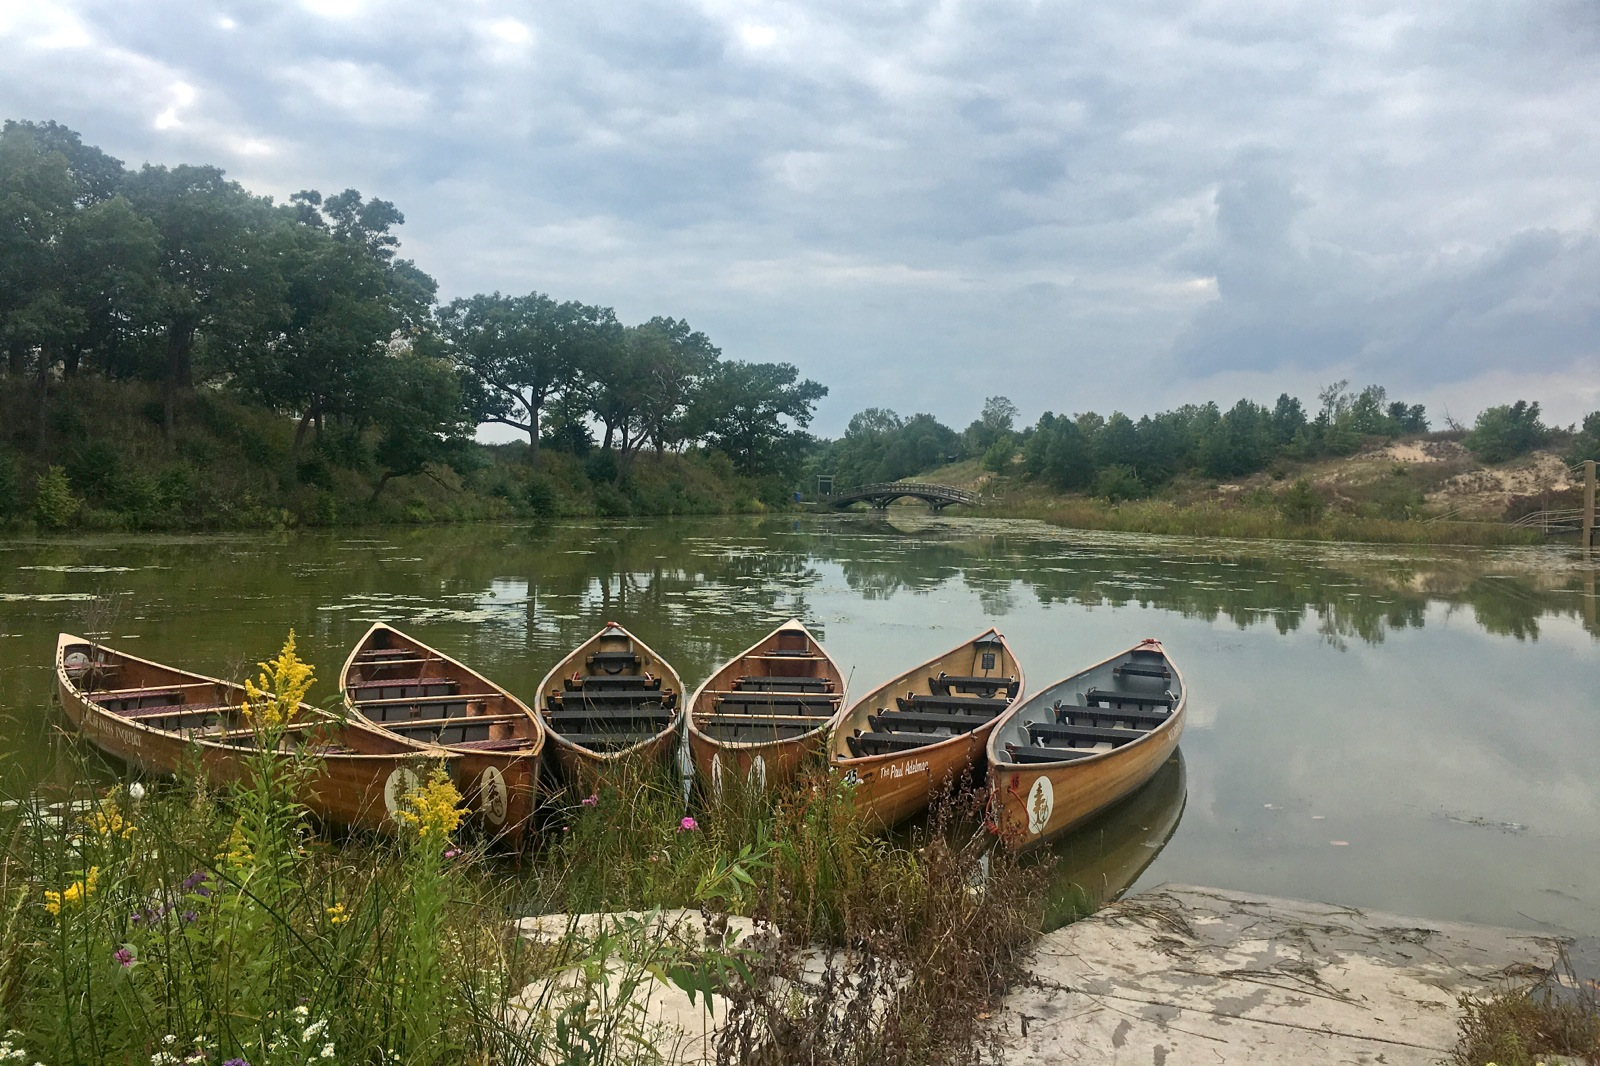 a photo of 6 empty canoes sitting on the shore of a calm river surrounded by vegetation